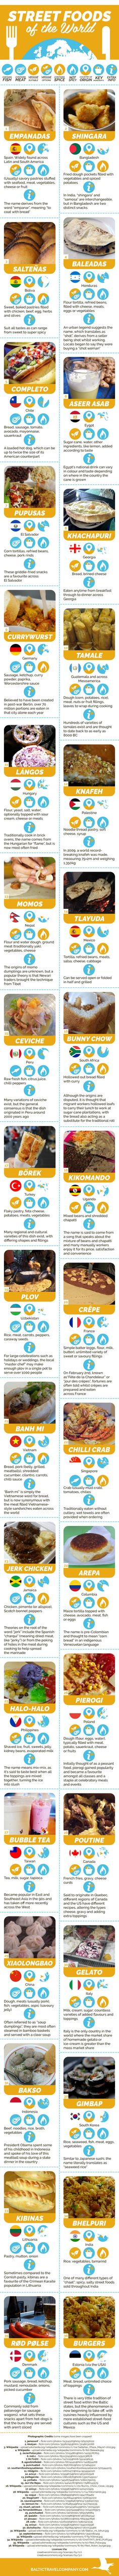 Street Foods of the World #Infographic #Food #Travel